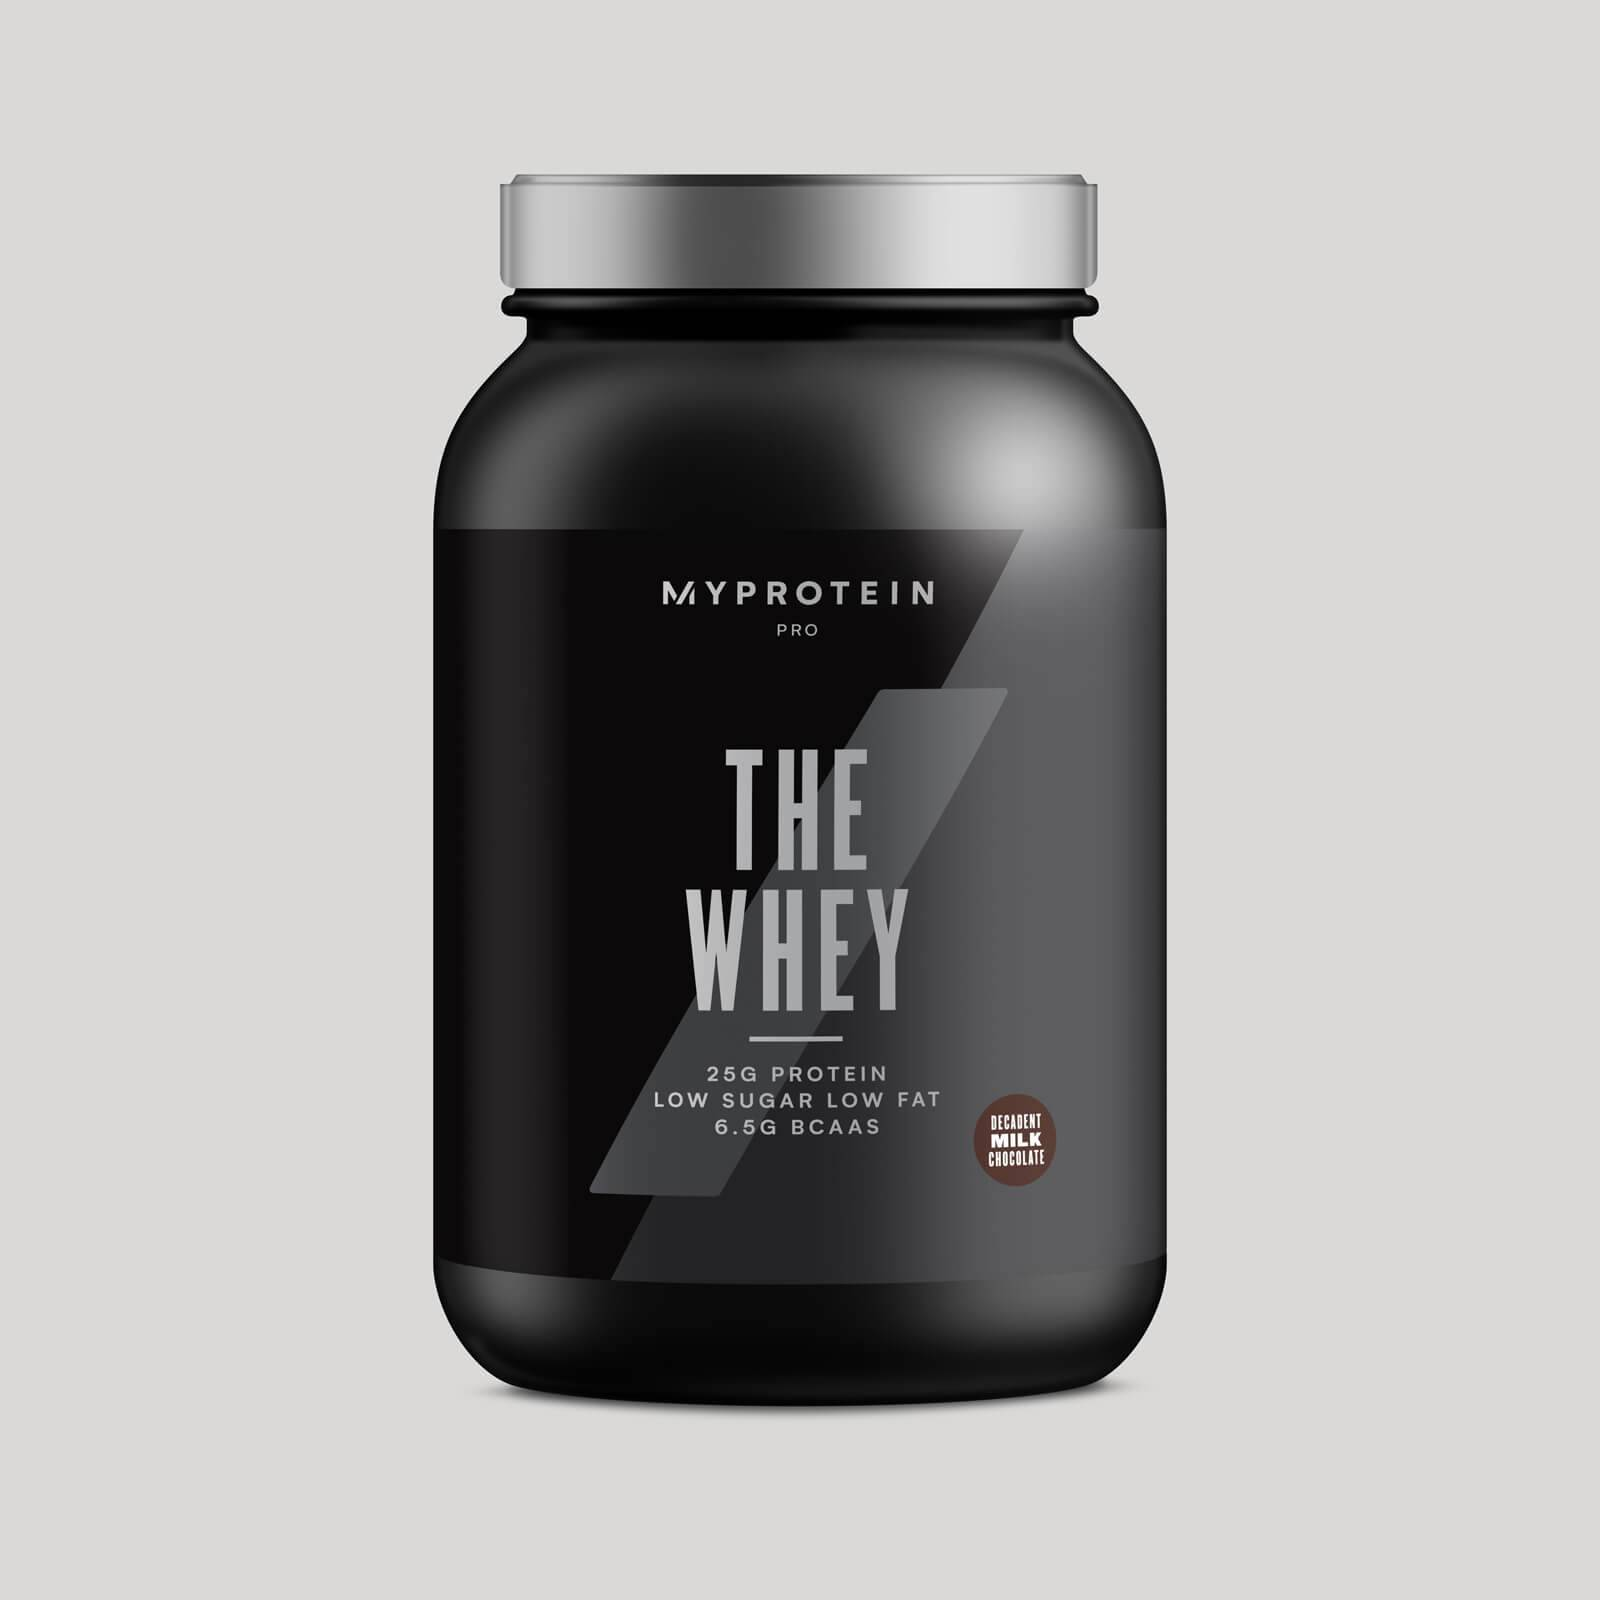 Myprotein THE Whey™ - 30 Servings - 900g - Peccato al cioccolato